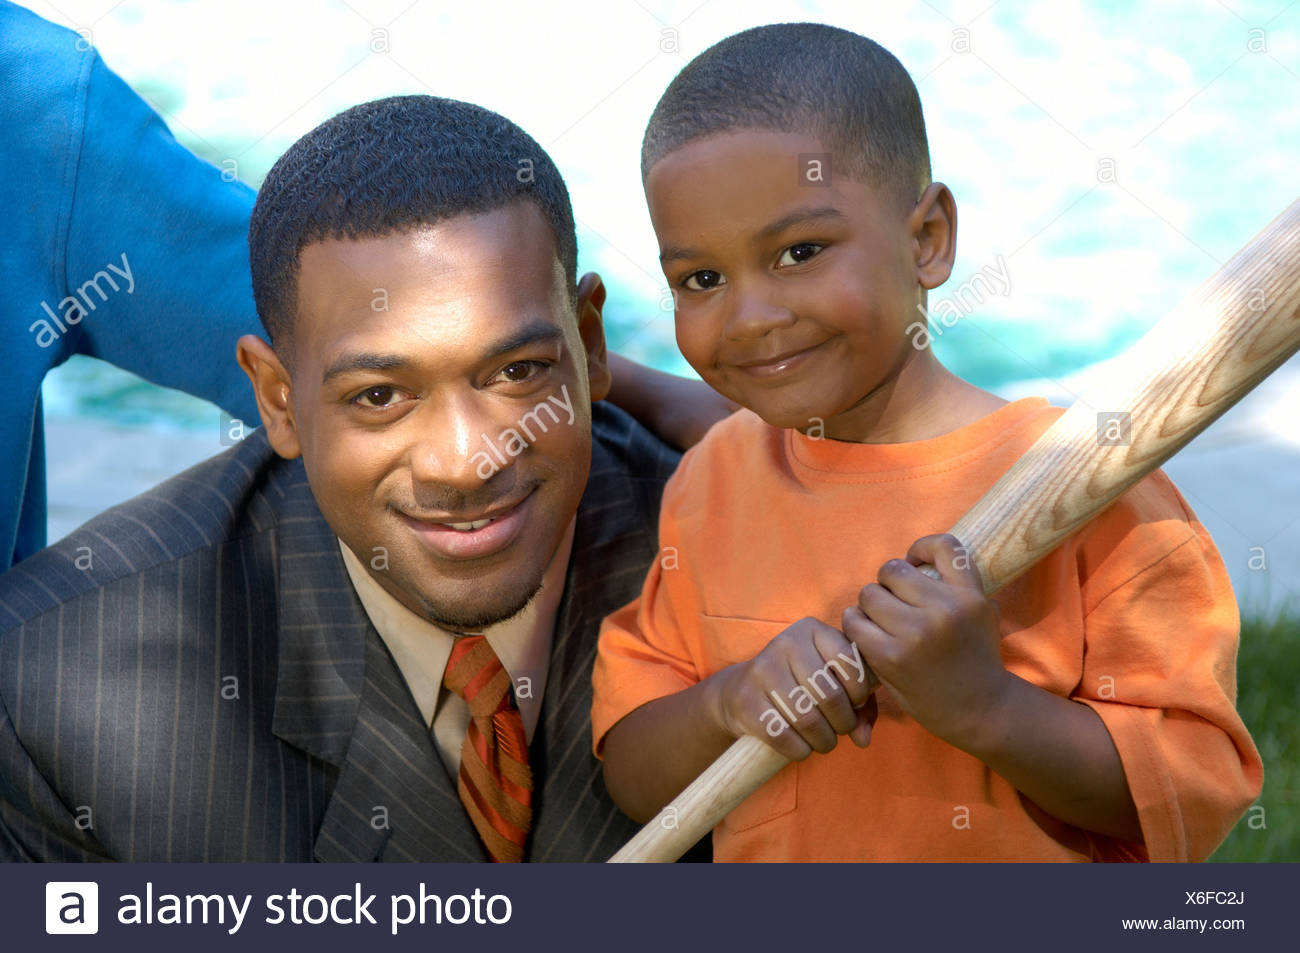 African father and son - Stock Image